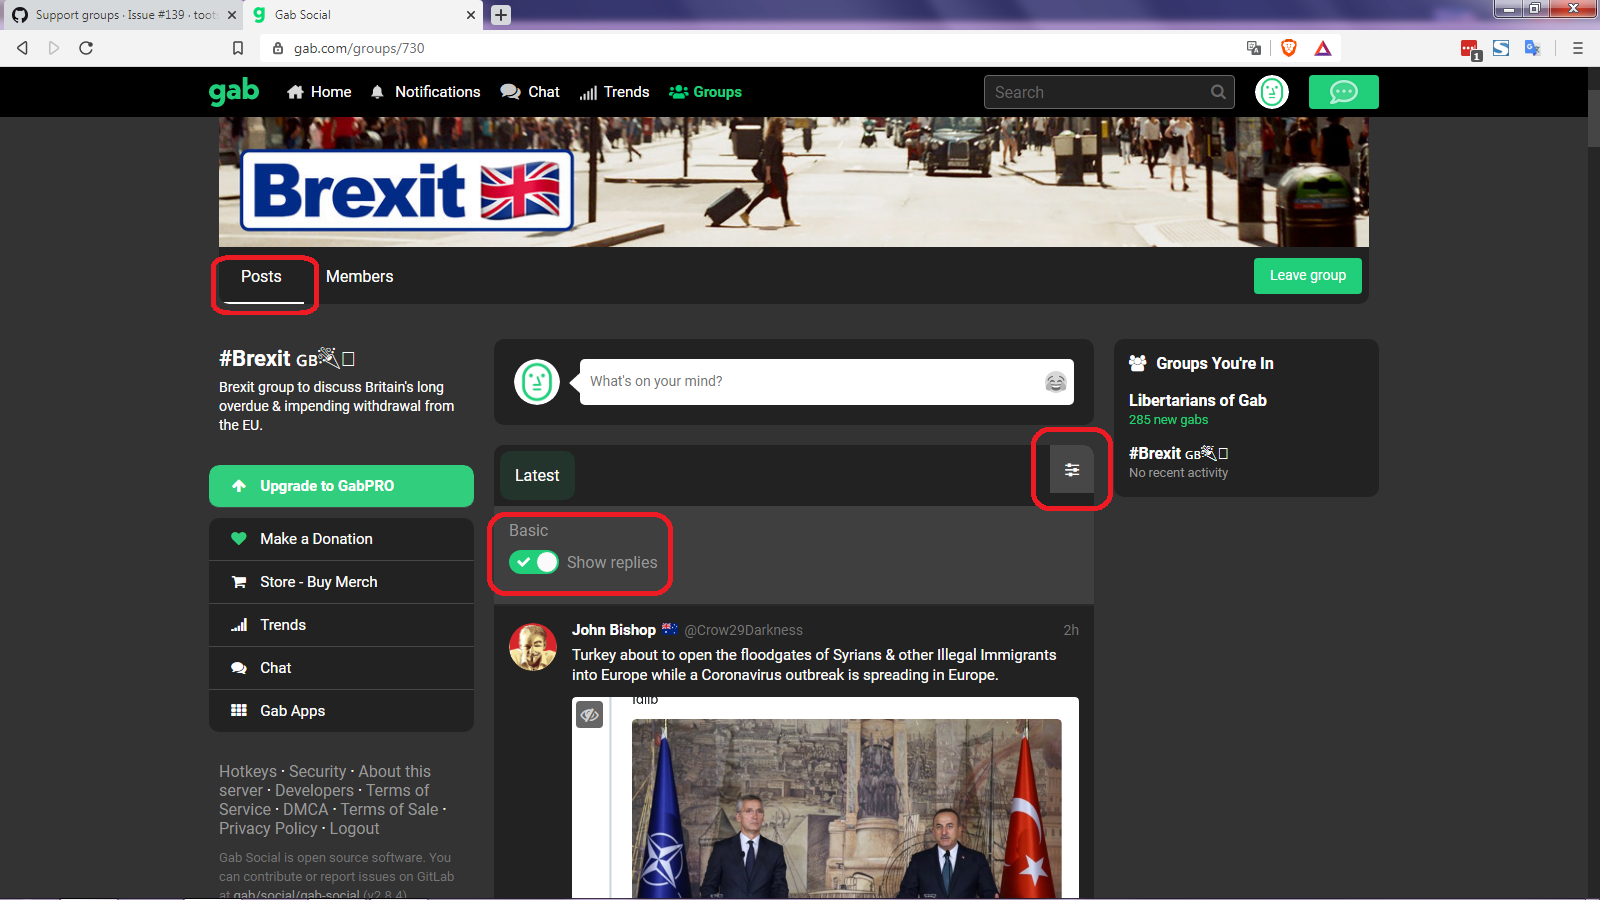 mastodon-groups-05-inside-a-group-posts-view-with-filter-on